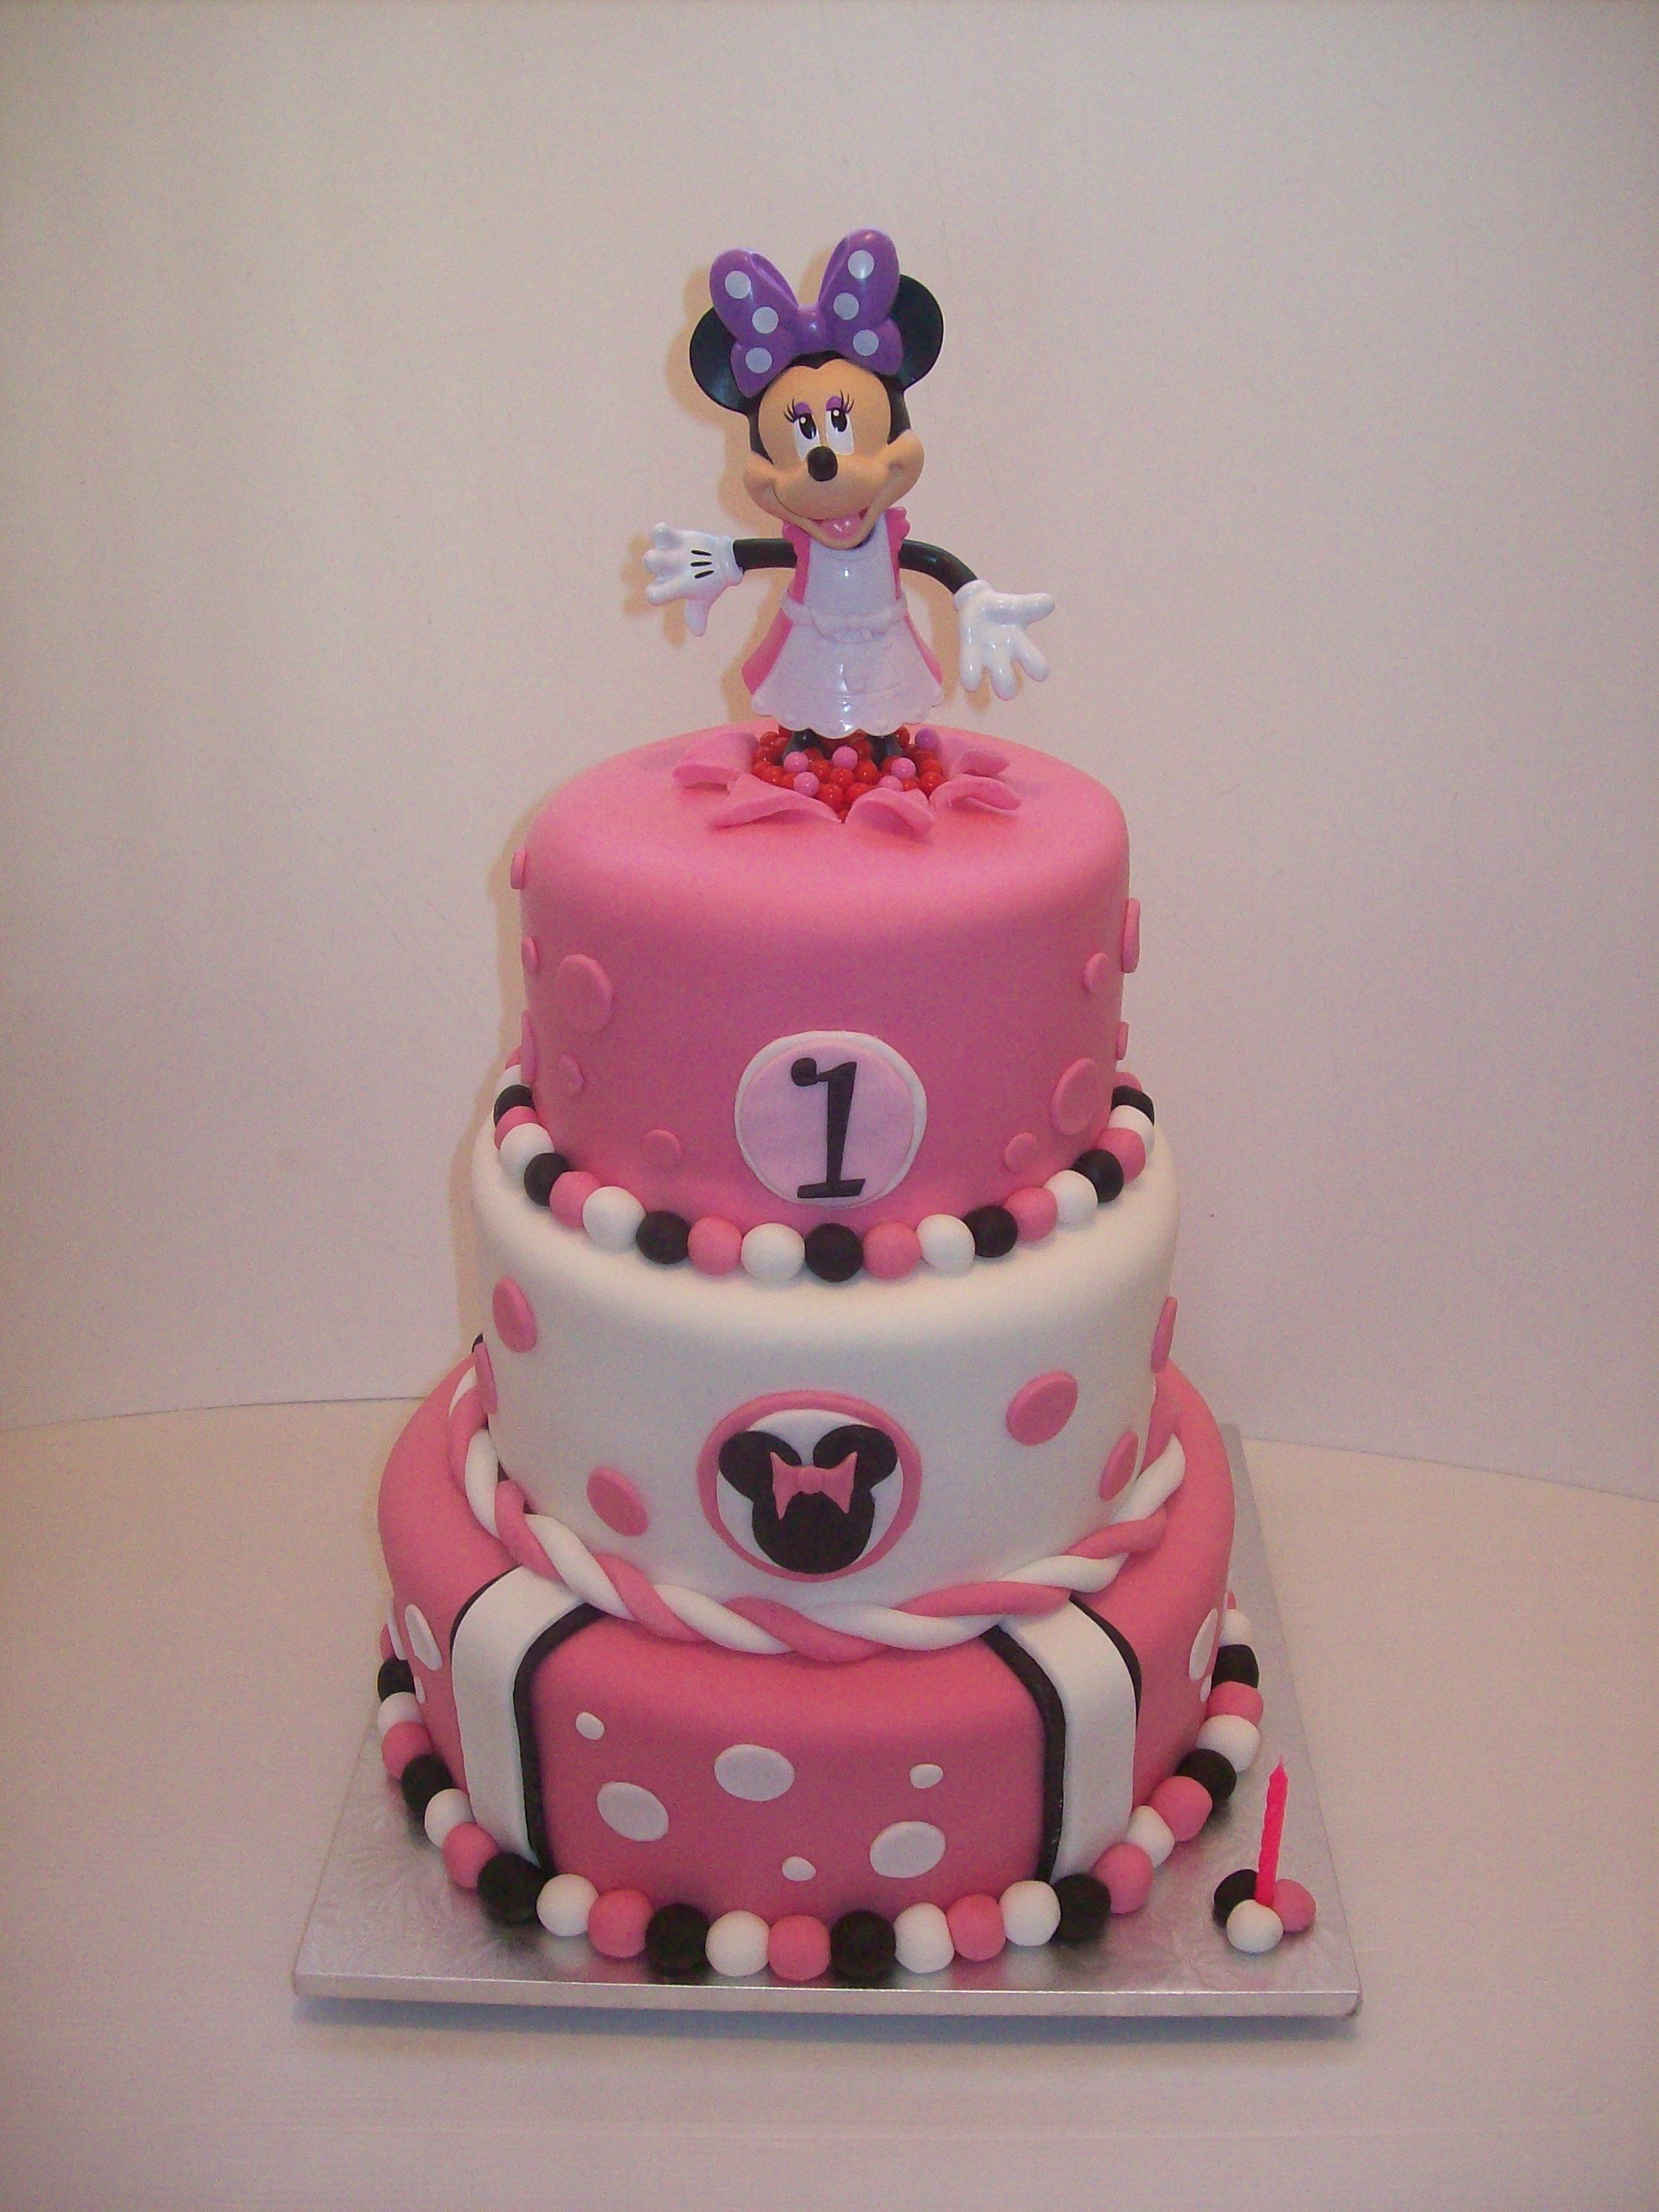 Minnie Mouse cake Auckland 550 cake is 108 and 6 inch figurines